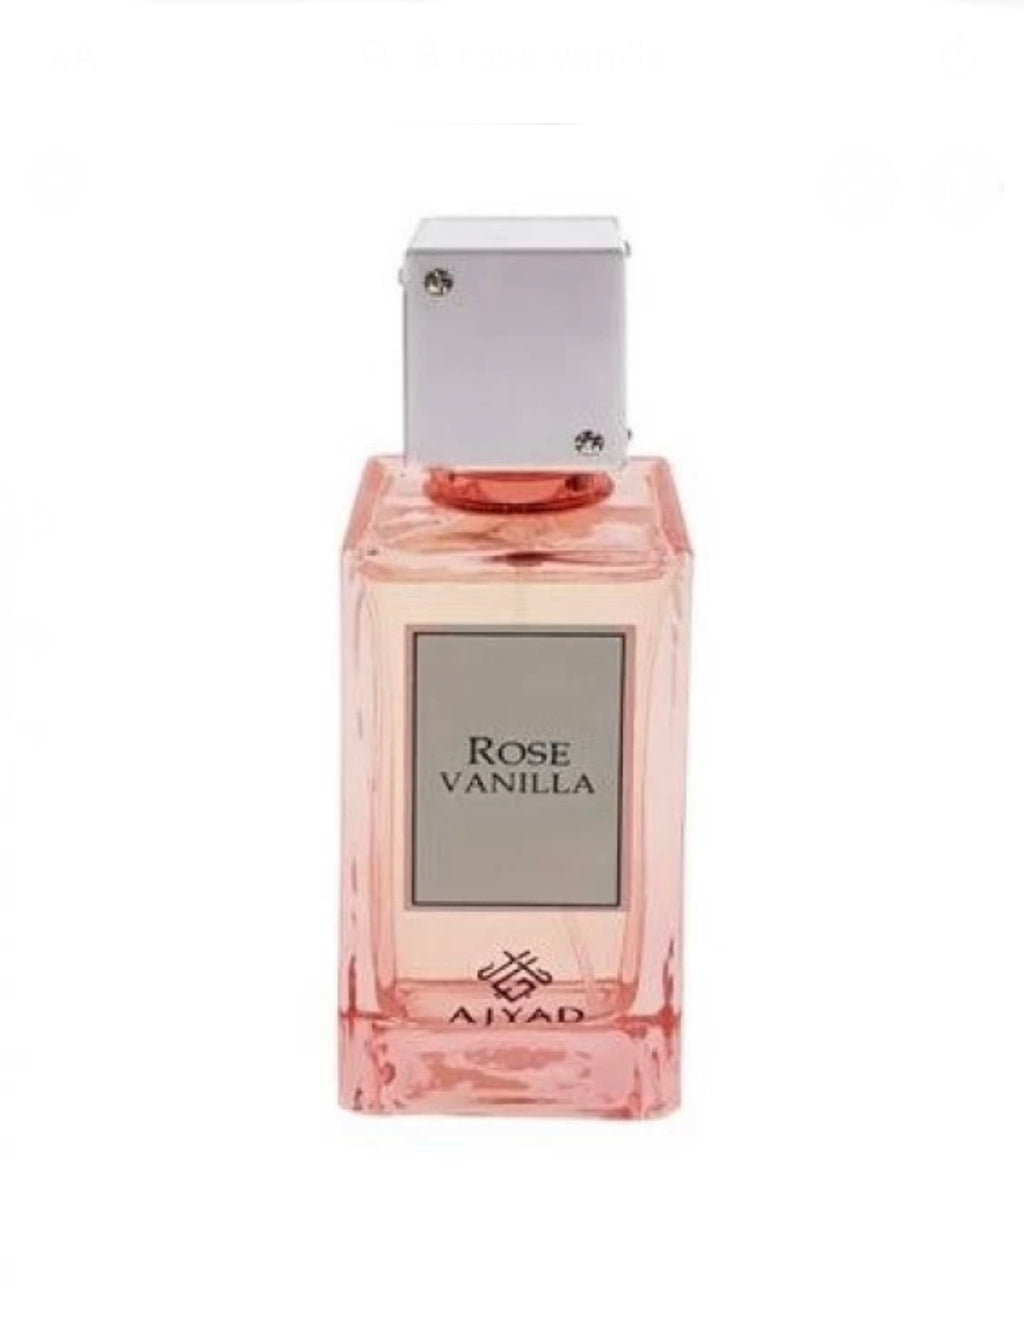 Rose Vanilla by Ajyad